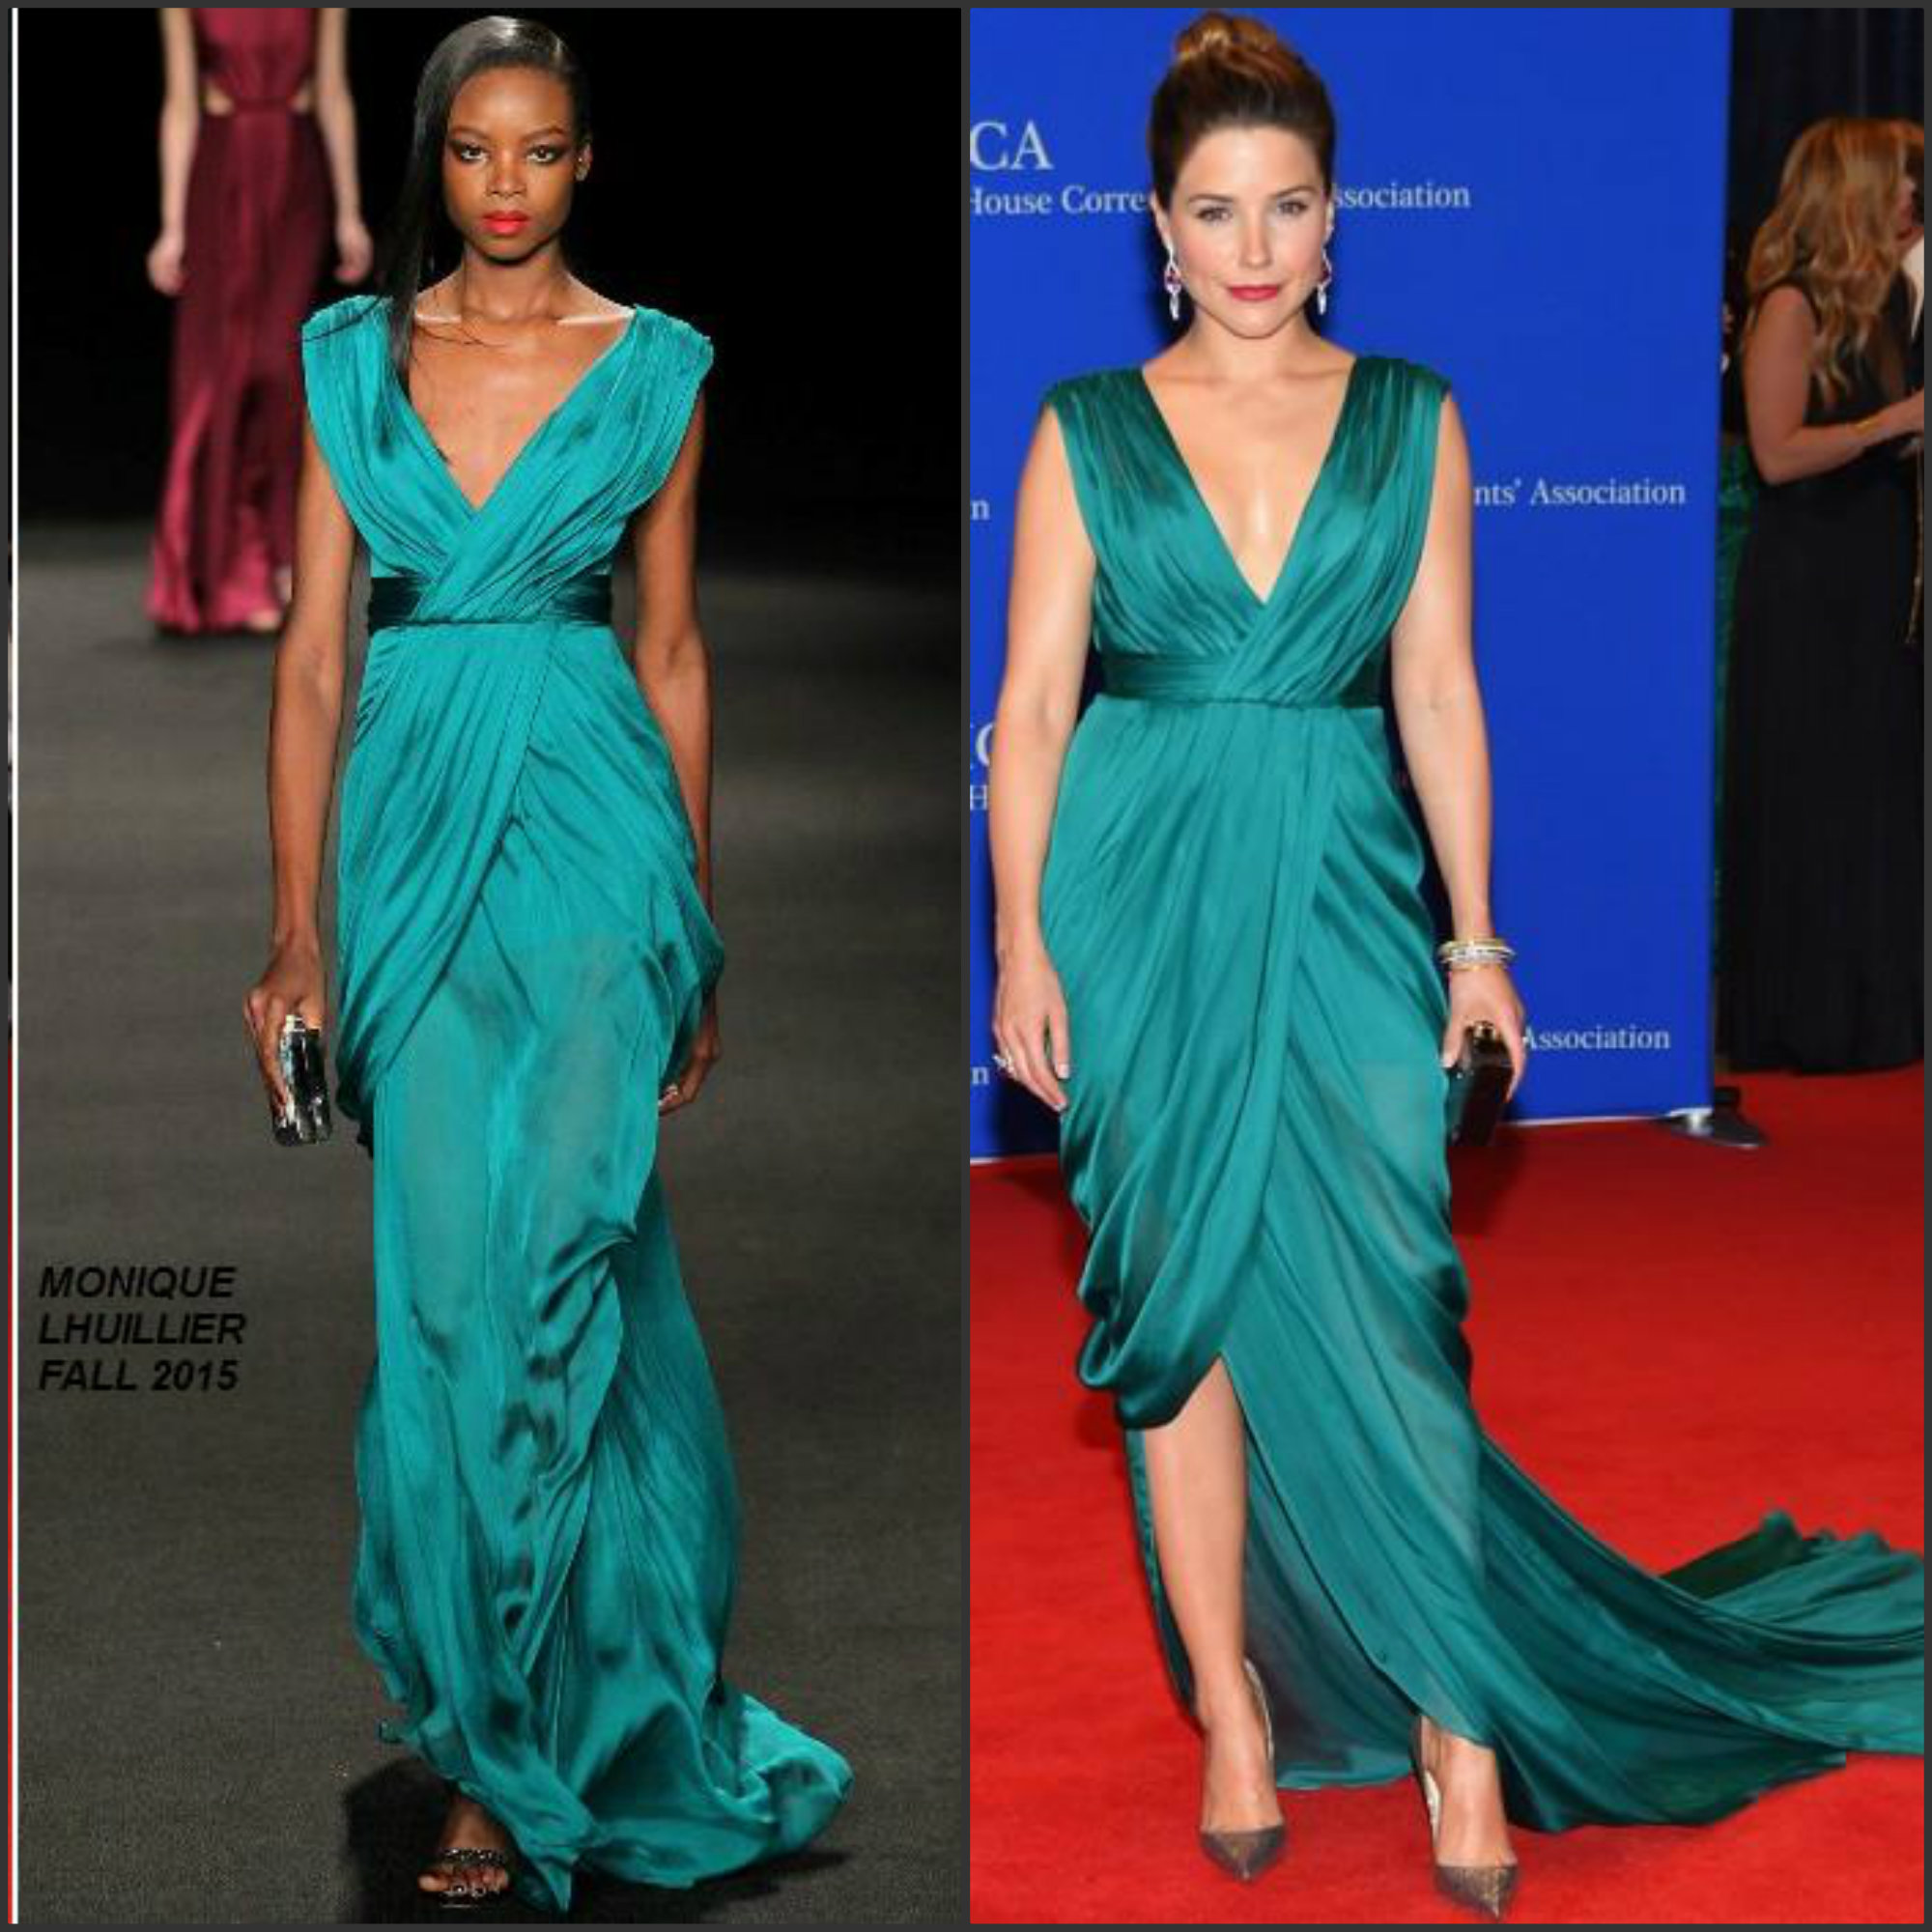 Sophia-Bush-in-Monique-Lhuillier-2015-White-House-Correspondents-Association-Dinner